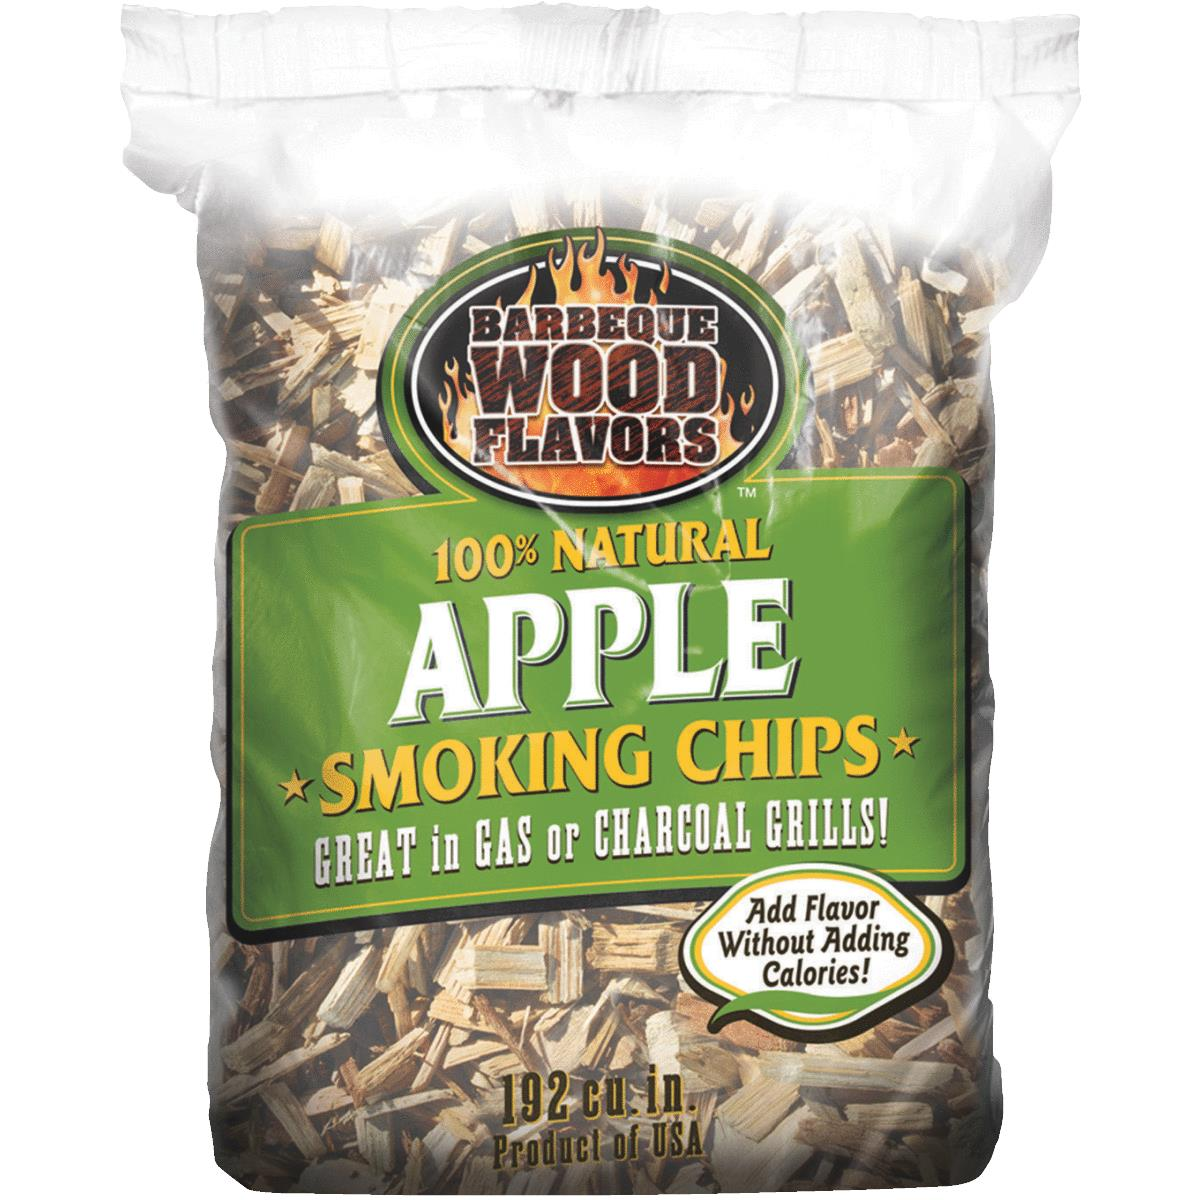 Buy barbeque wood flavors smoking chips cu in